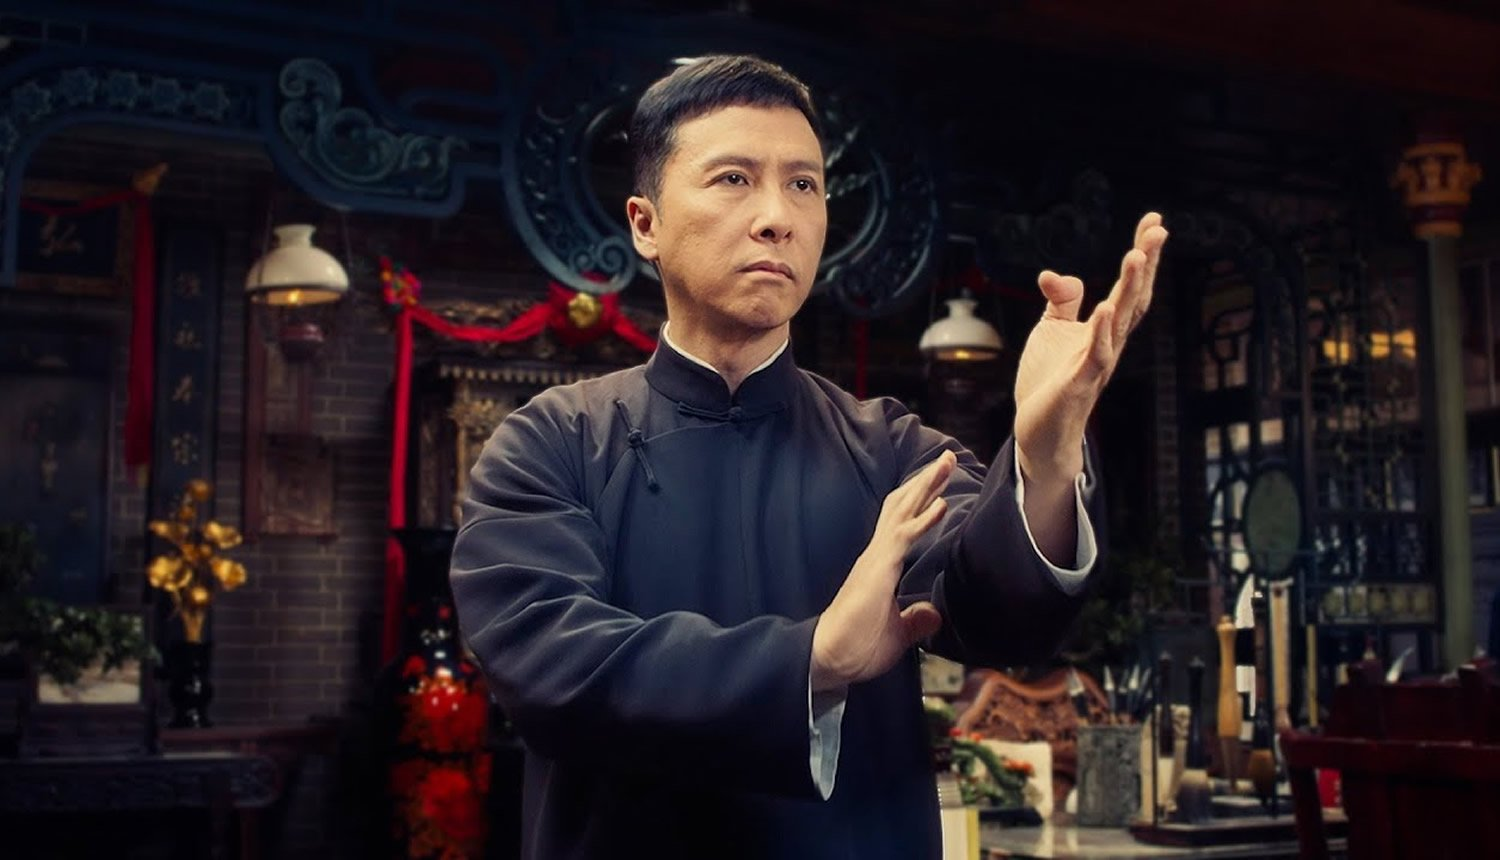 IP Man 4: Release Date and Everything You Need to Know Before Release!